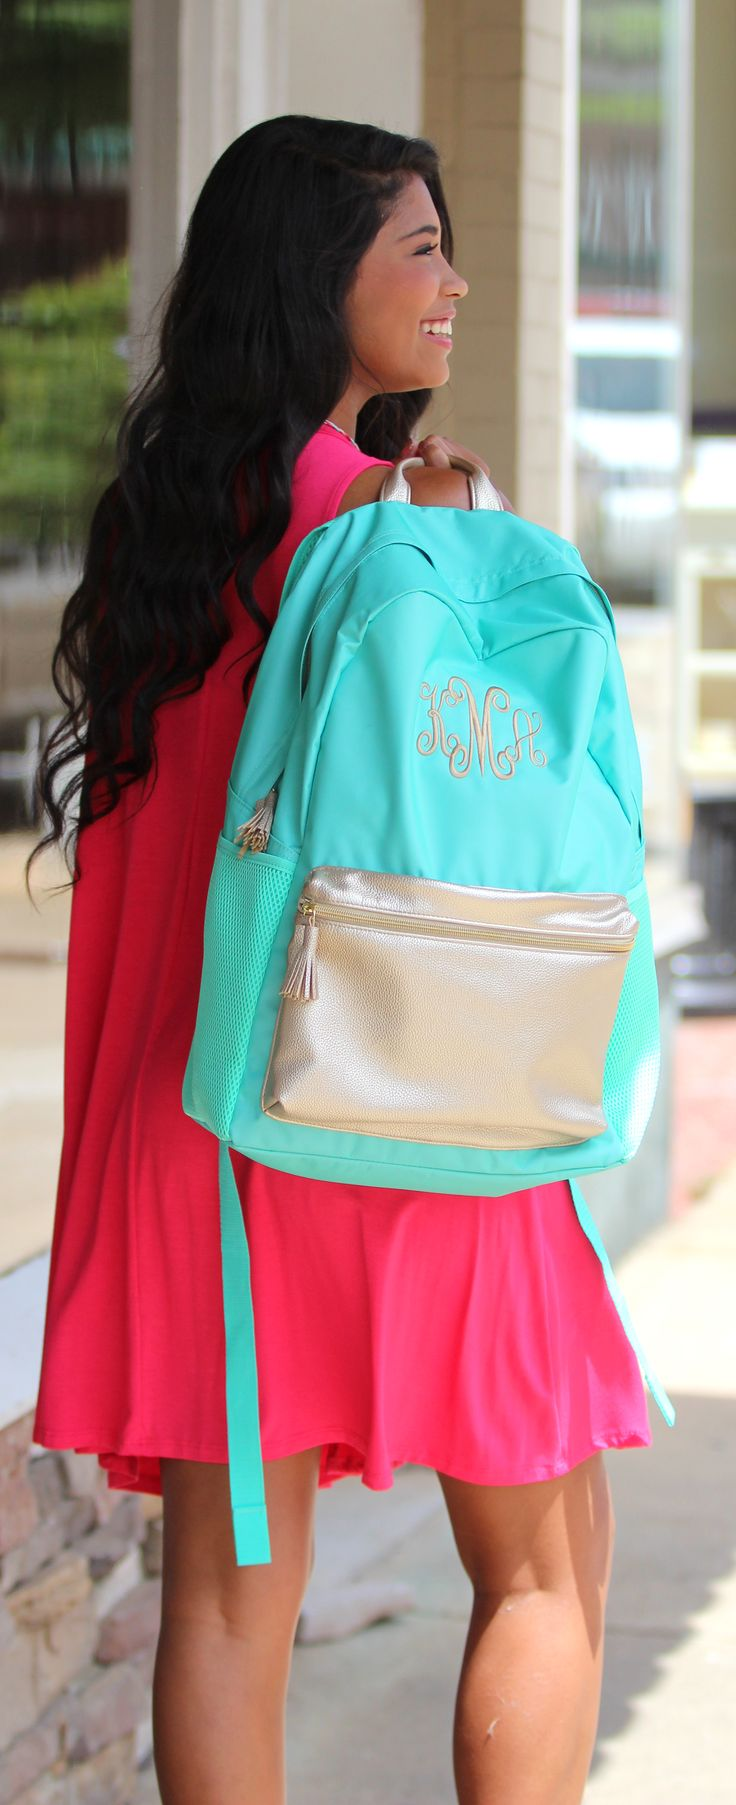 Hit the books with our NEW Monogrammed Backpack! Shop now to customize your's today!